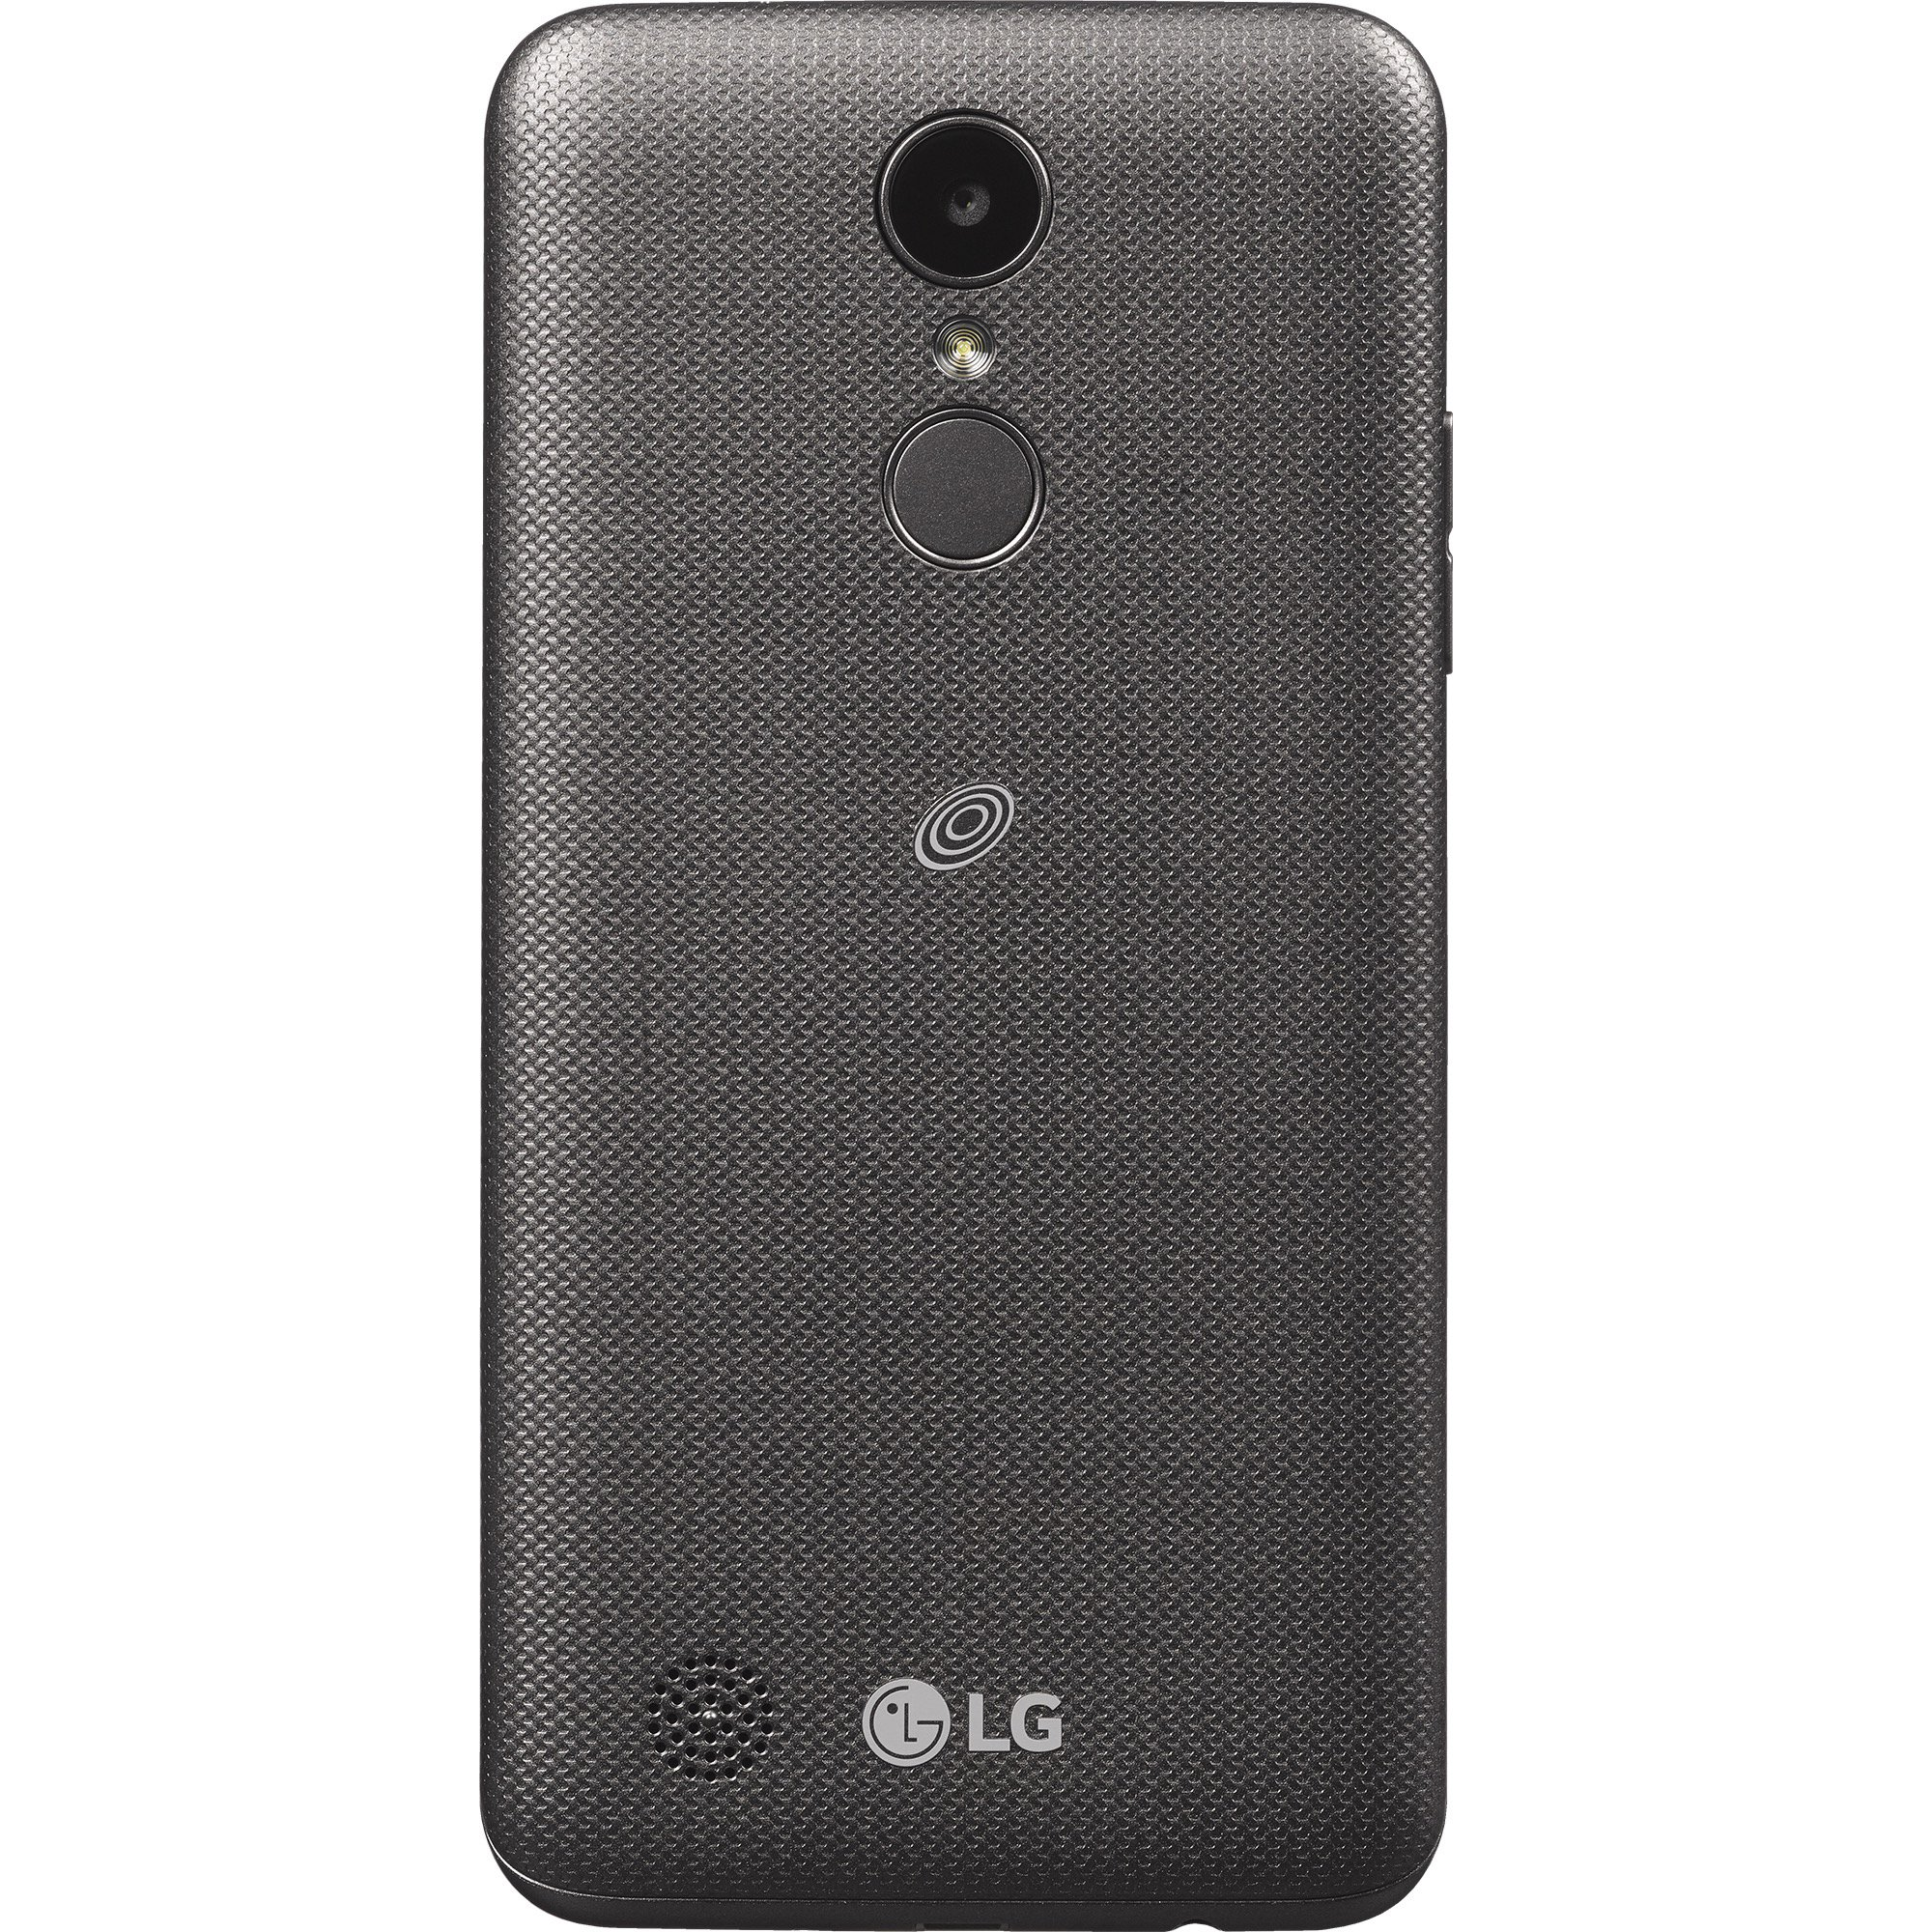 TracFone LG Rebel 2 4G LTE Prepaid Smartphone with Amazon Exclusive Free $40 Airtime Bundle by TracFone (Image #2)